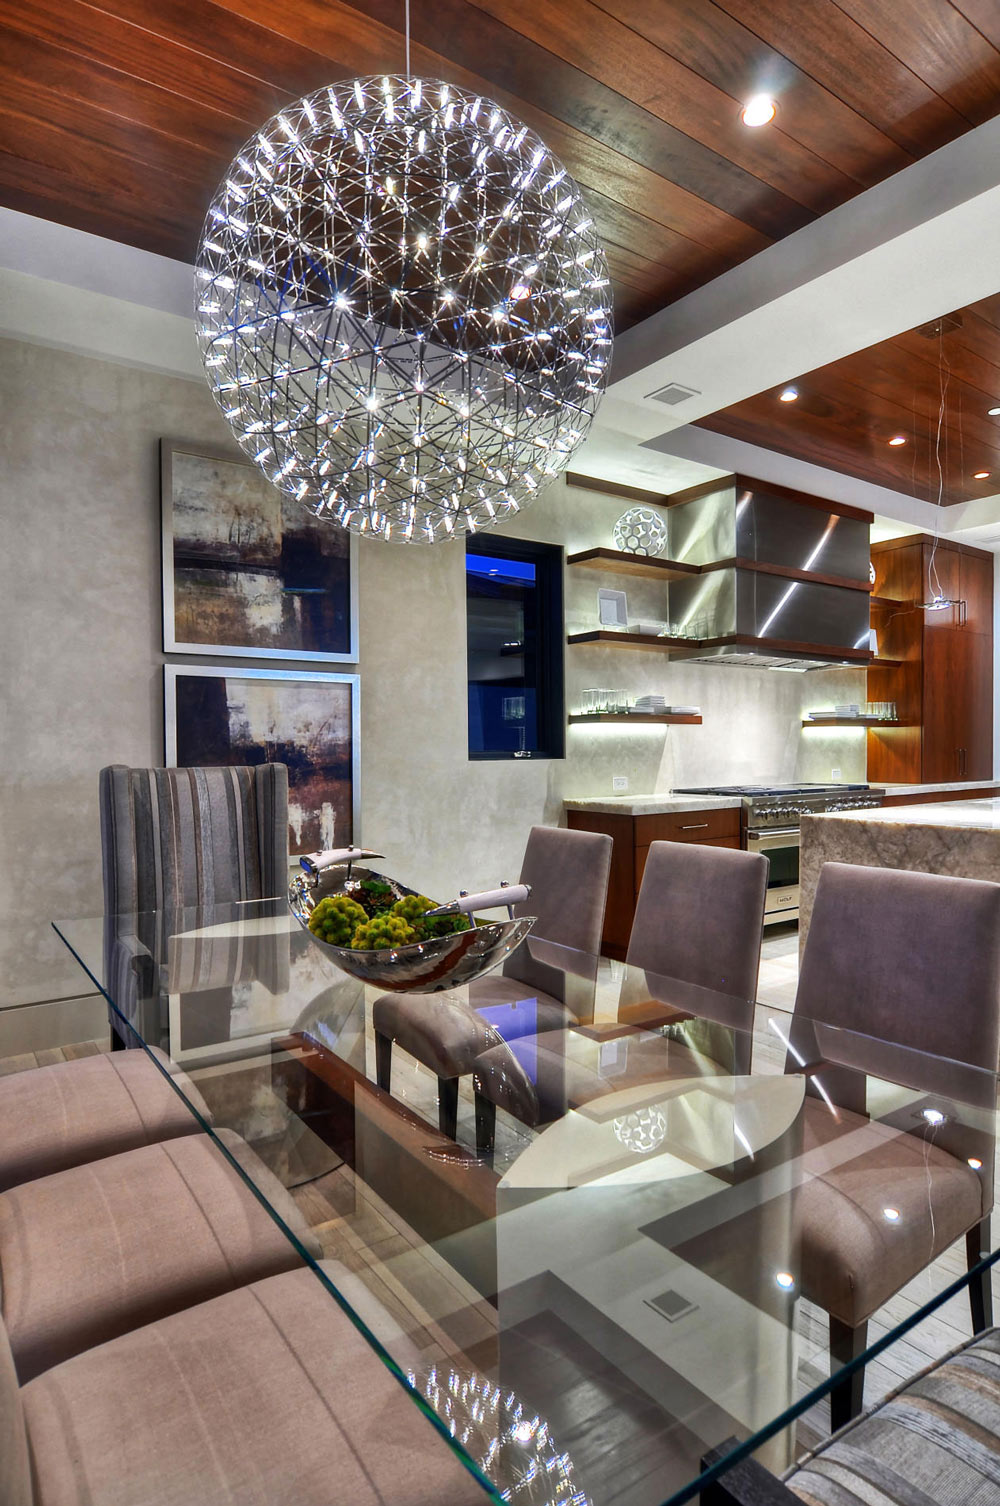 Lighting, Glass Dining Table, Chairs, Home in Corona del Mar, California